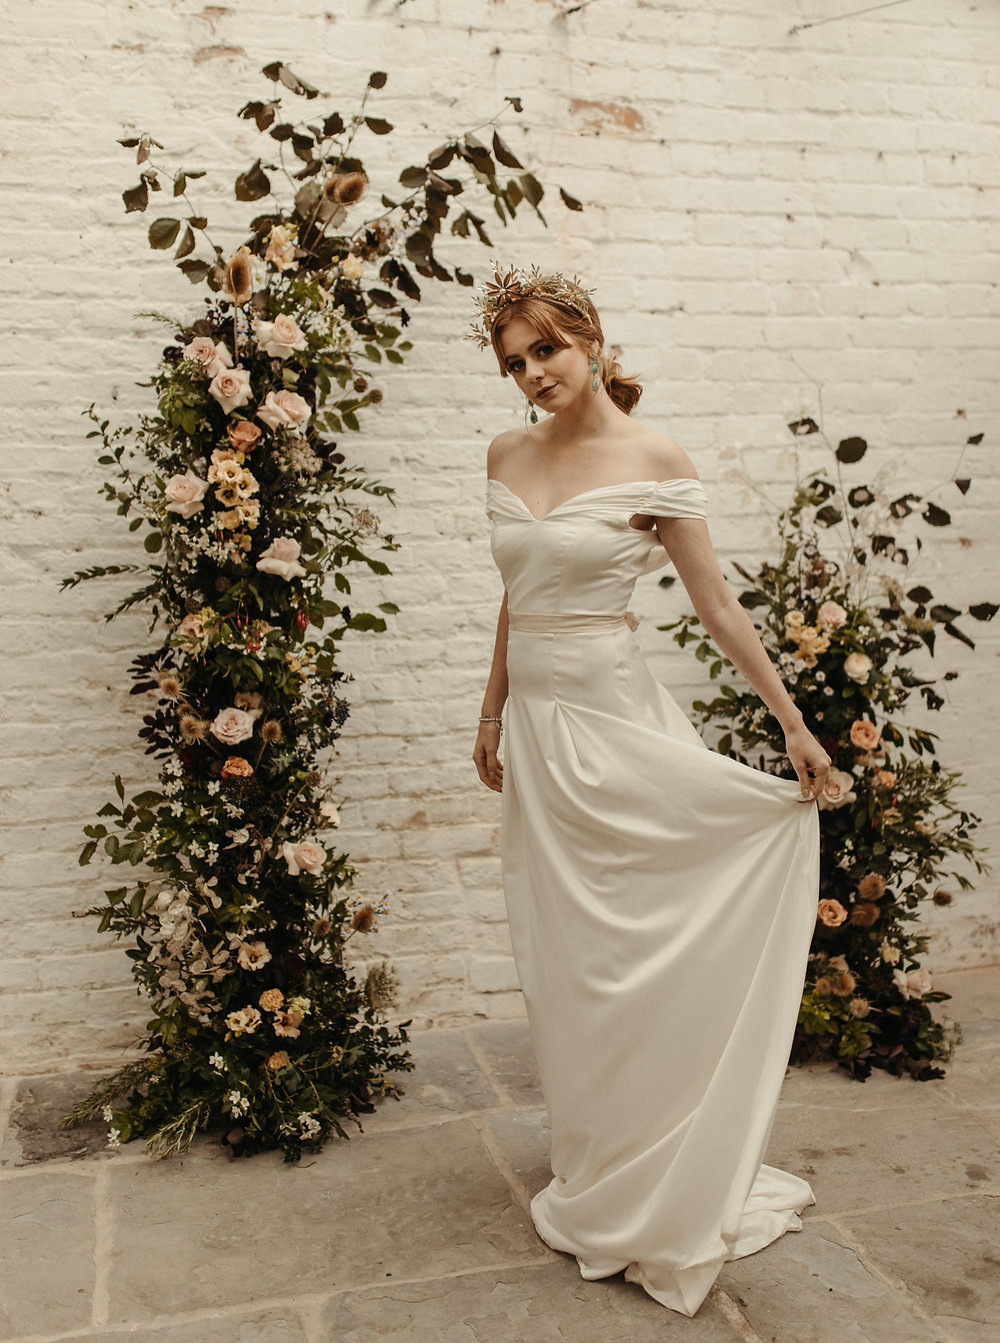 Bride in crown headdress stands in front of a floral installation display by Emma Jane Floral Design.